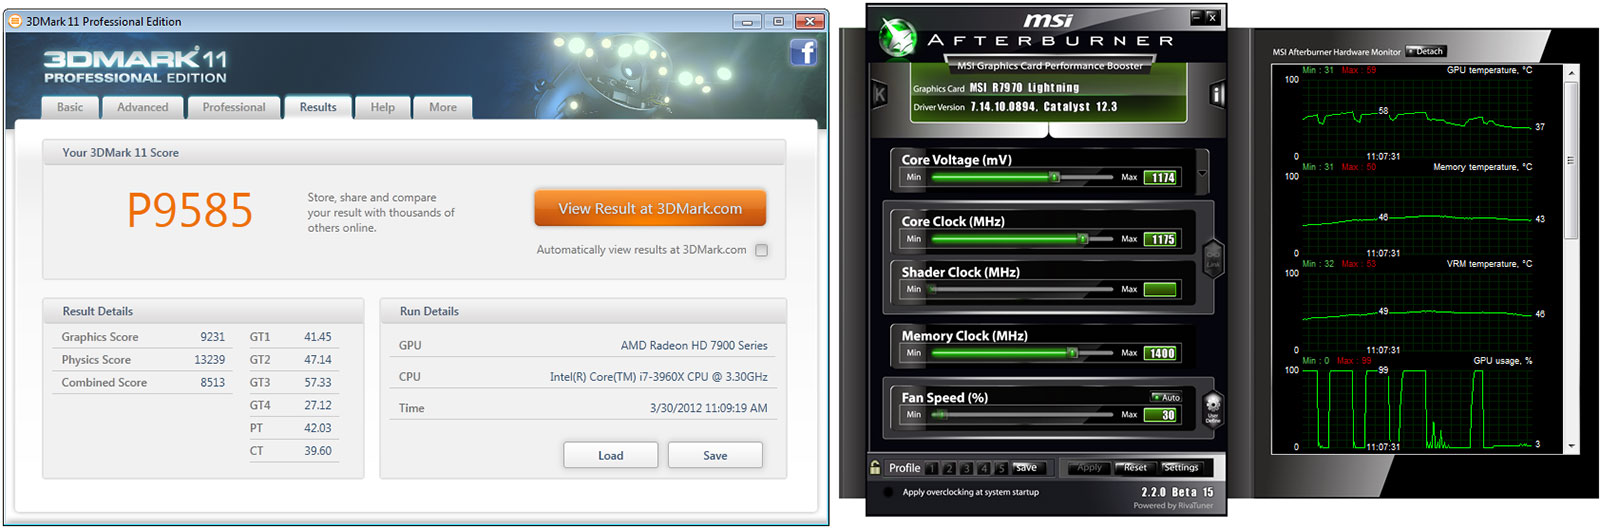 MSI R7970 Lightning Radeon HD 7970 3GB Video Card Review - Page 16